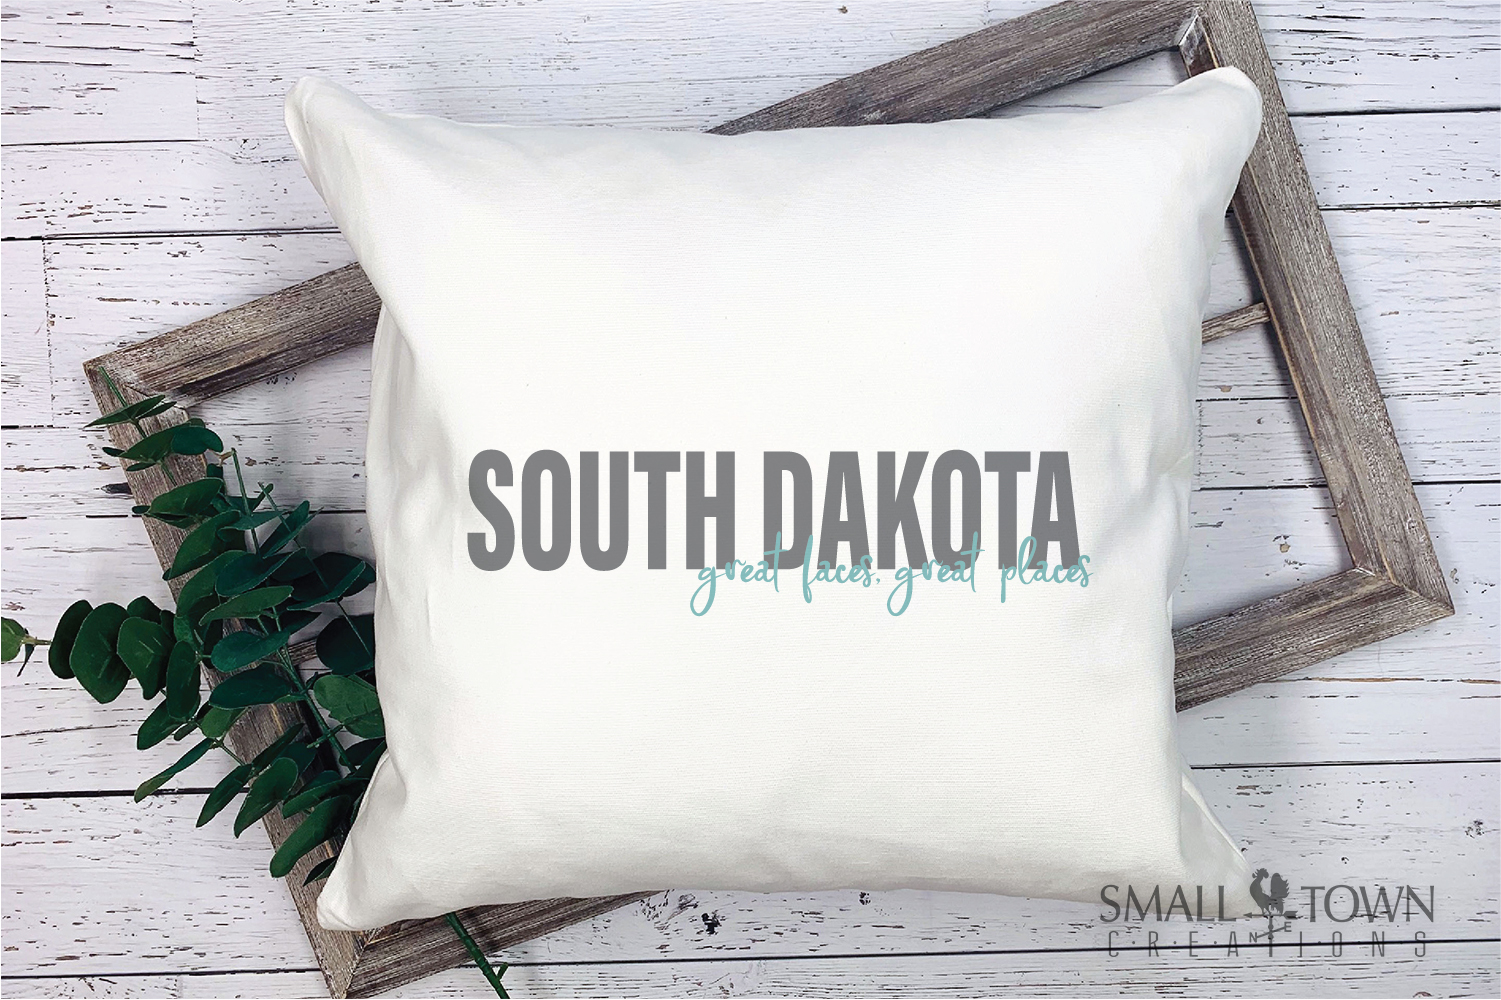 South Dakota, Great faces Great Places, PRINT, CUT & DESIGN example image 5